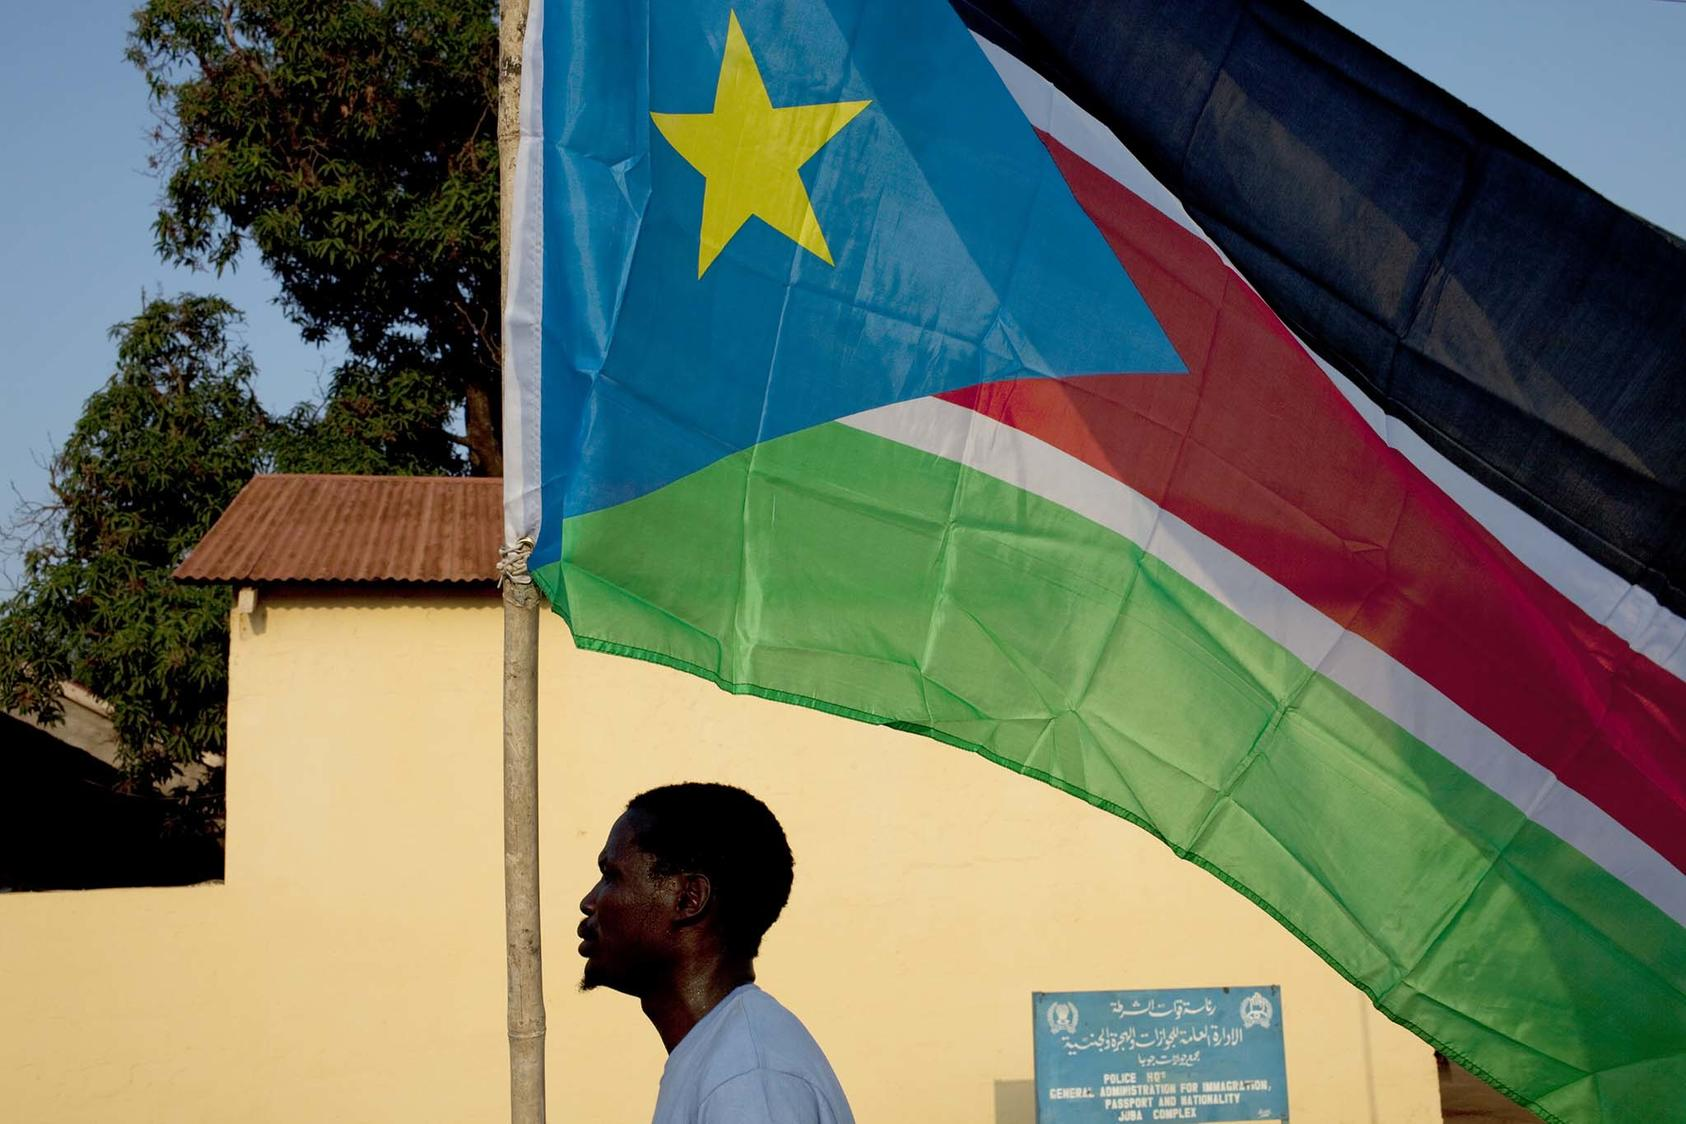 A man carries a southern Sudan flag through the town of Juba, southern Sudan, July 8, 2011. (Tyler Hicks/The New York Times)